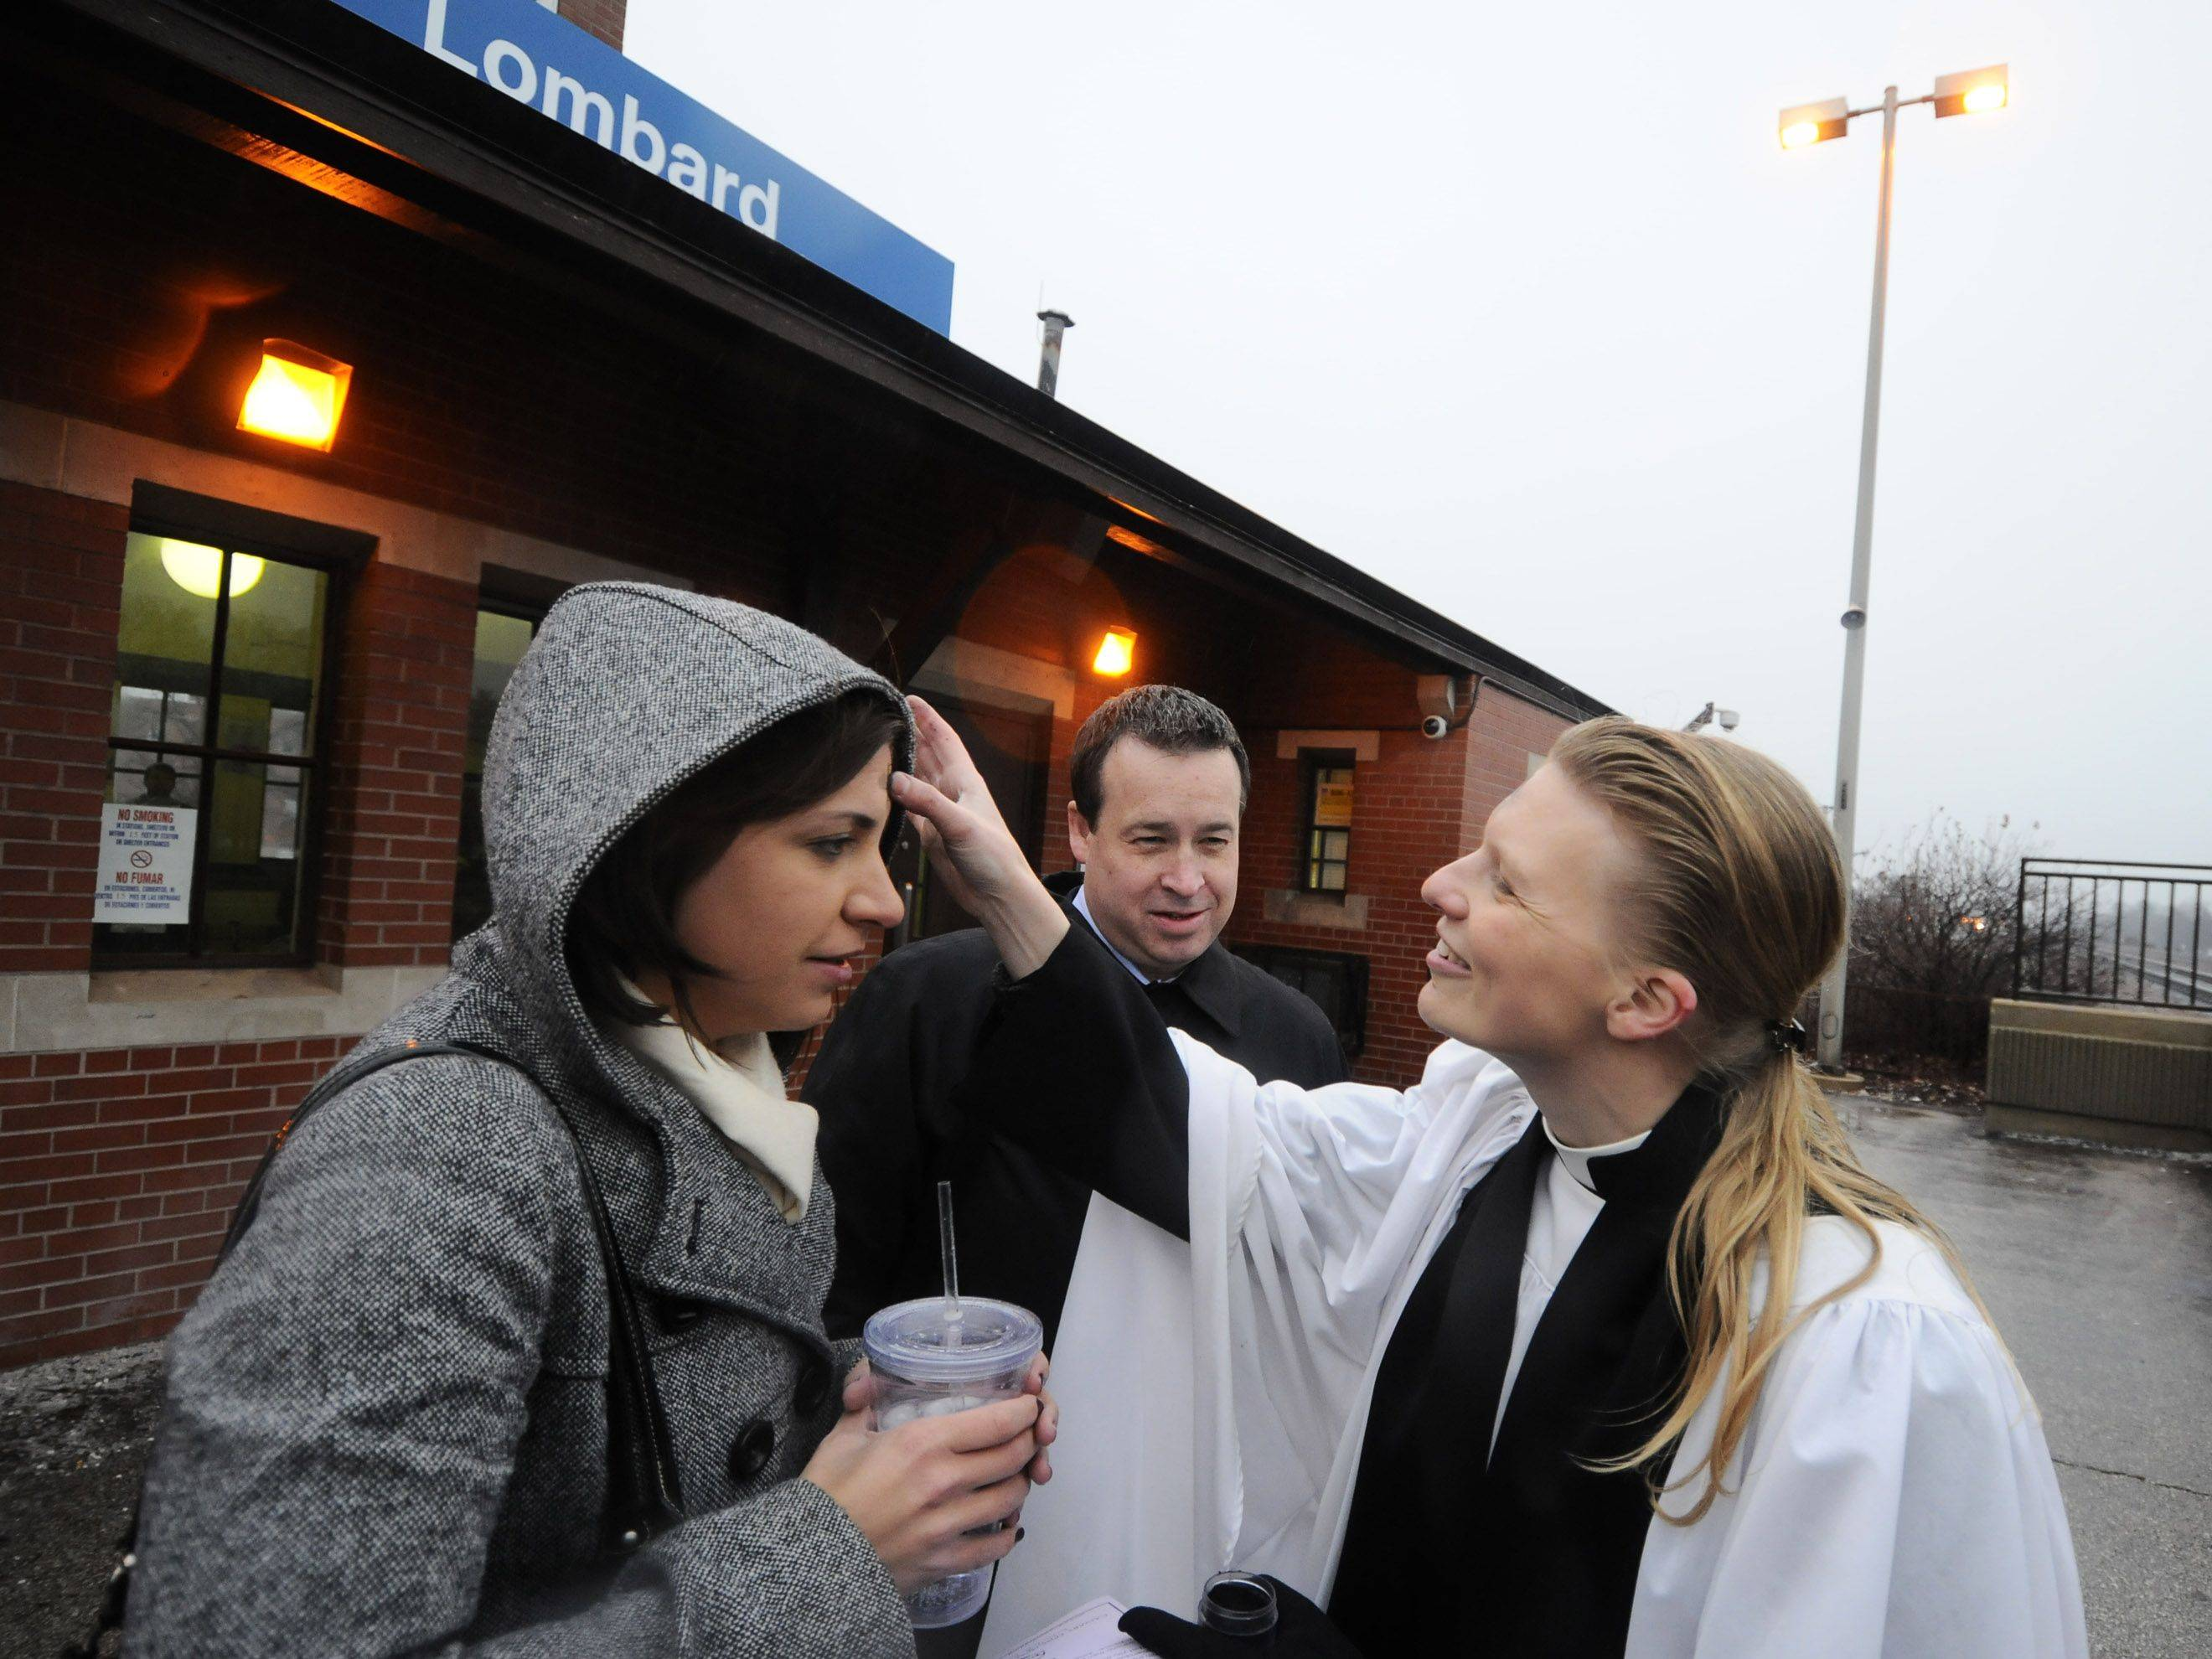 Kristin Krol, left, and Tom O'Hara, both from Lombard, receive ashes from Rev. Emily Mellott before getting on their train Wednesday.